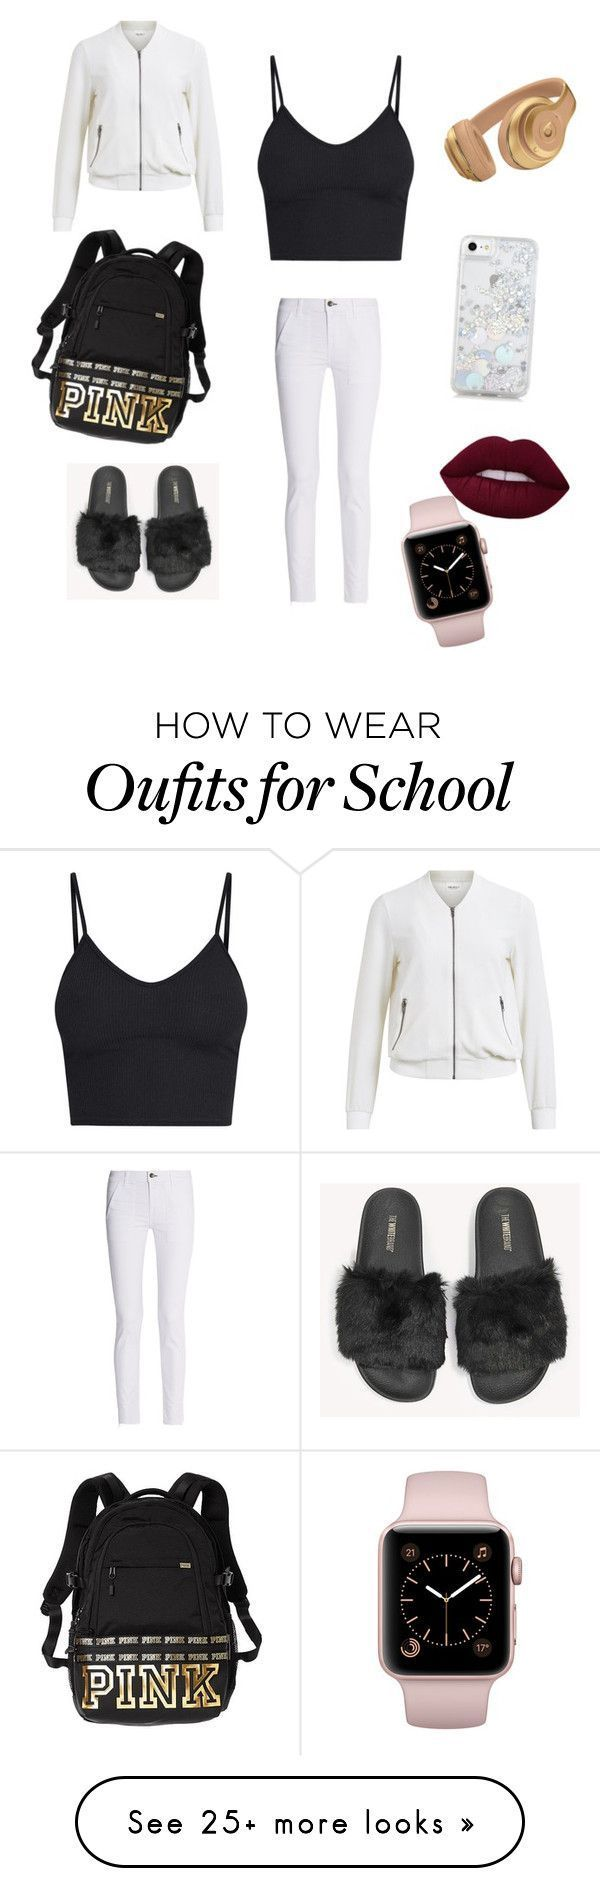 Jazzgowdy39s quot1st day of high schoolquot in Polyvore with Rag  bone The Whit  Jazzgowdys 1st day of high school in Polyvore with Rag  bone The Whit